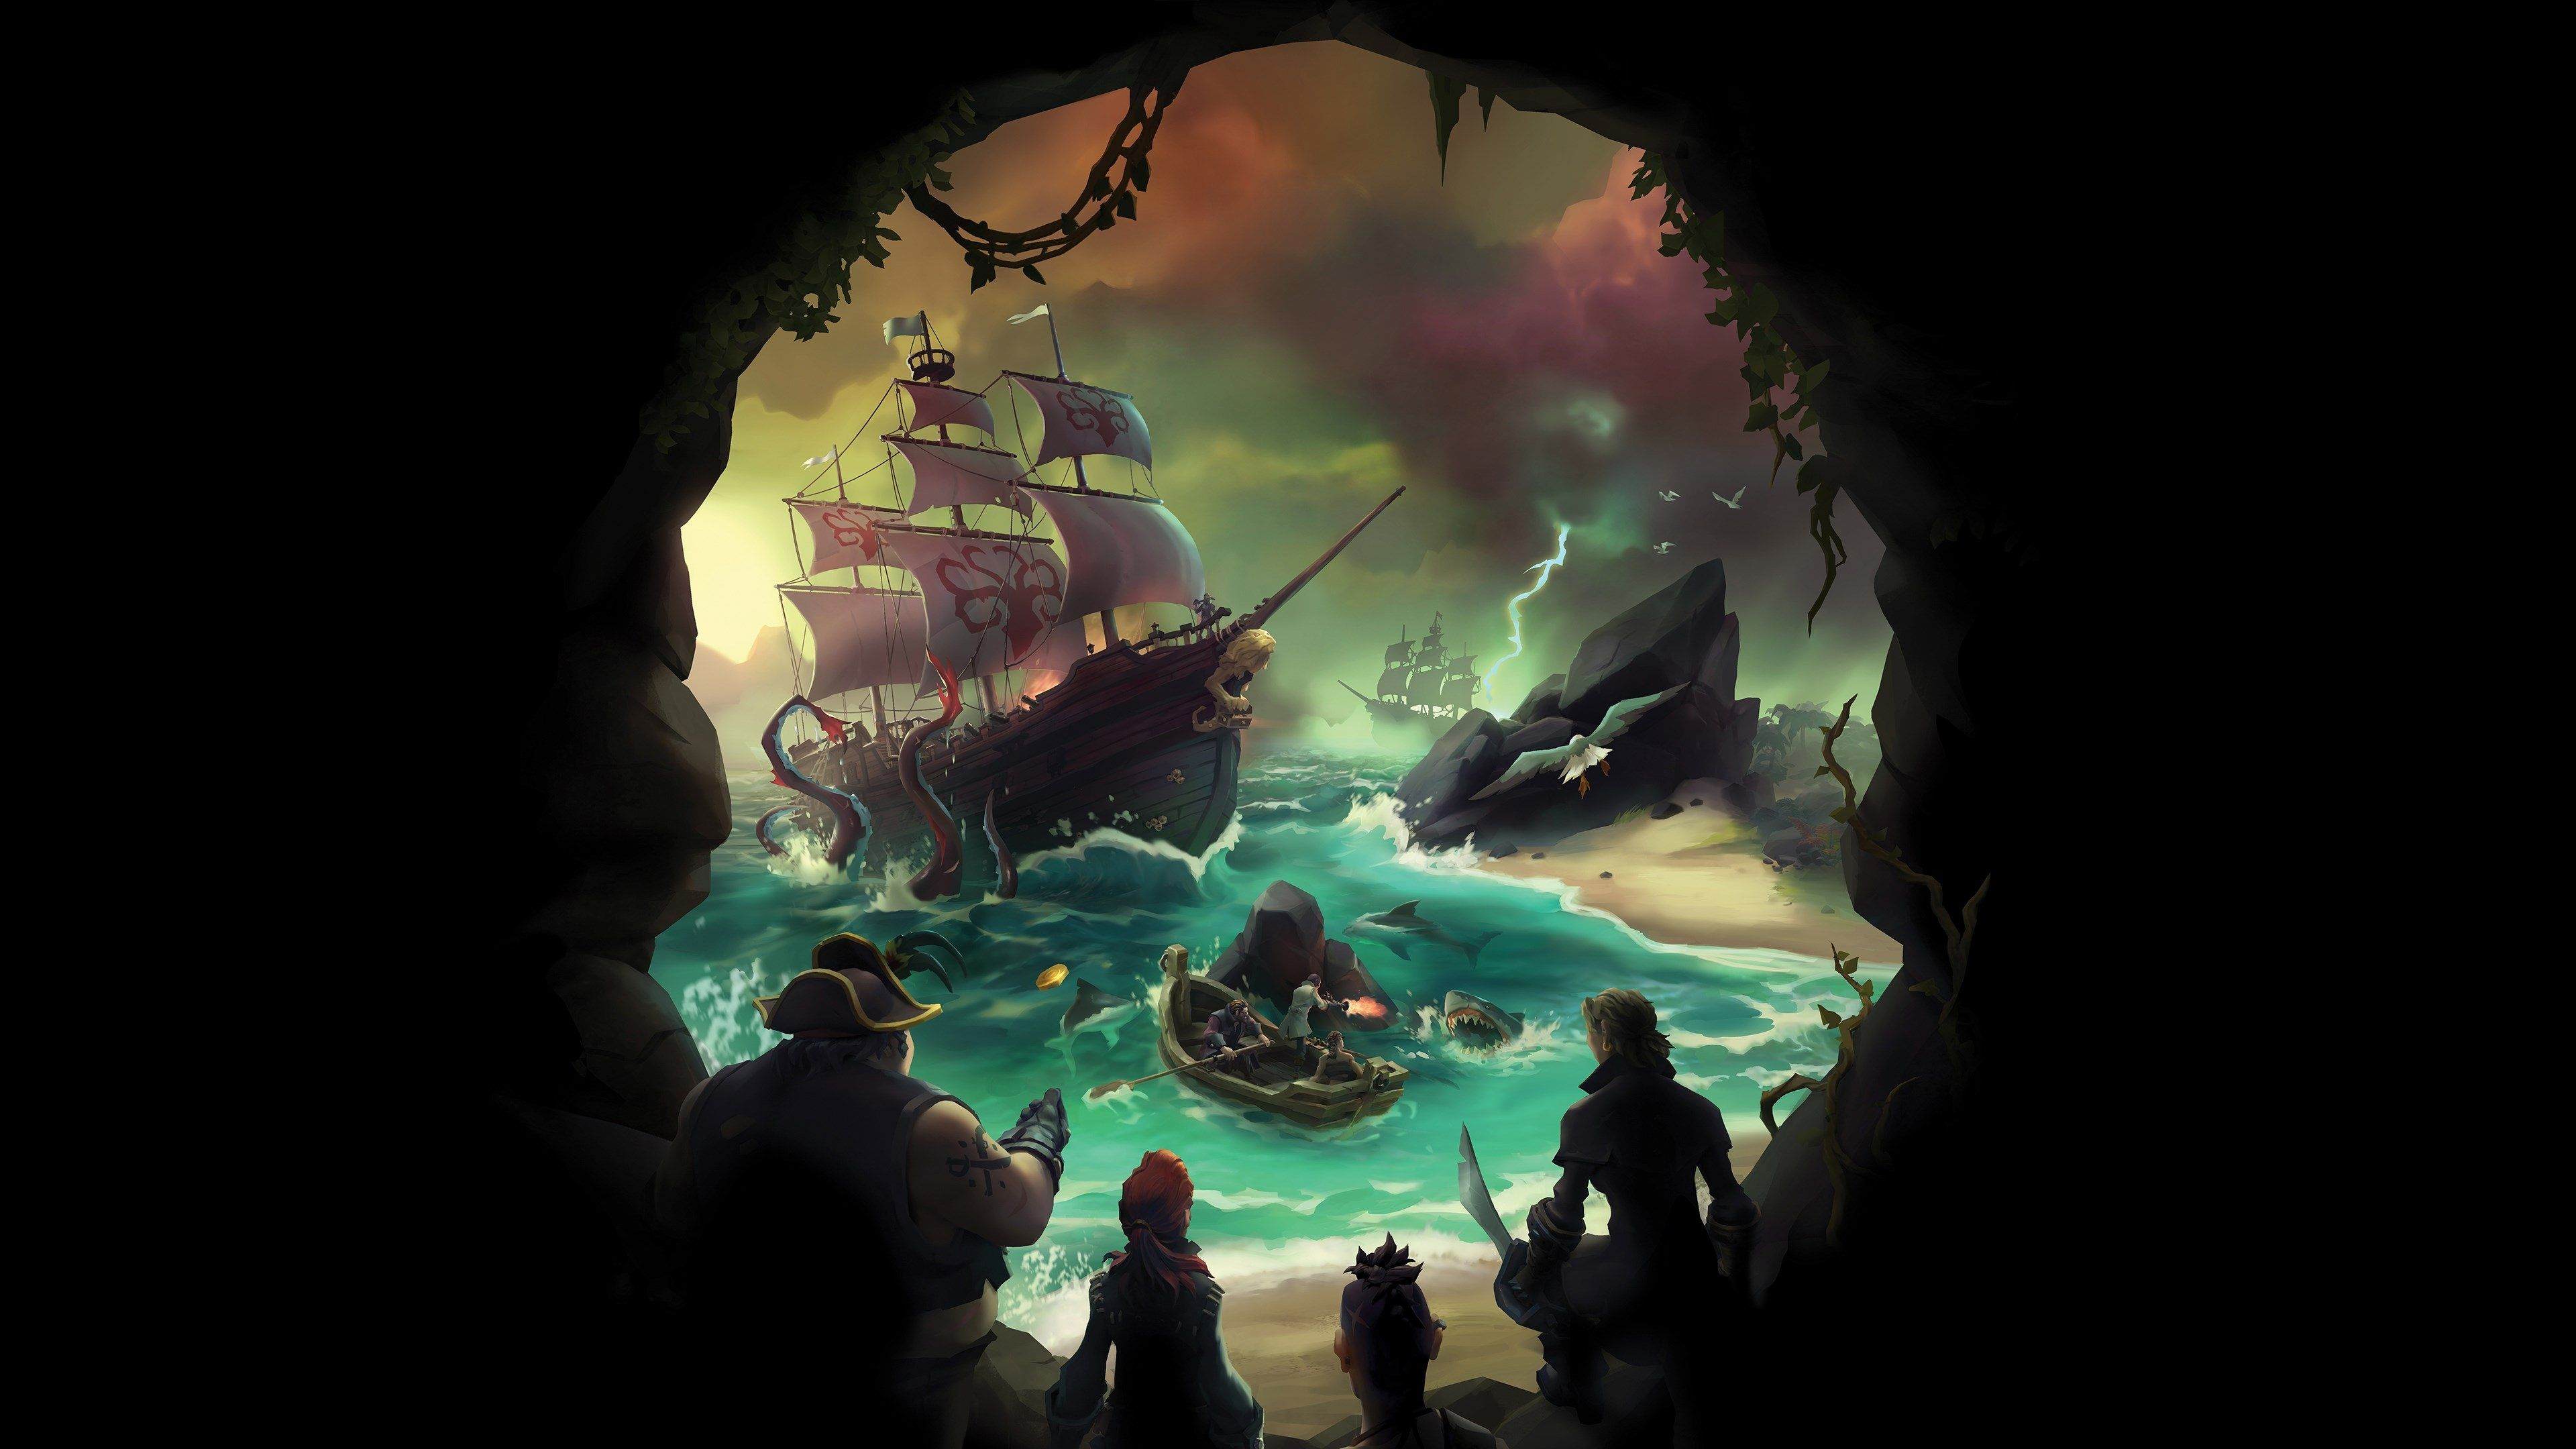 3840x2160 Sea Of Thieves 4k Hd Wallpaper For Macbook Pro Sea Of